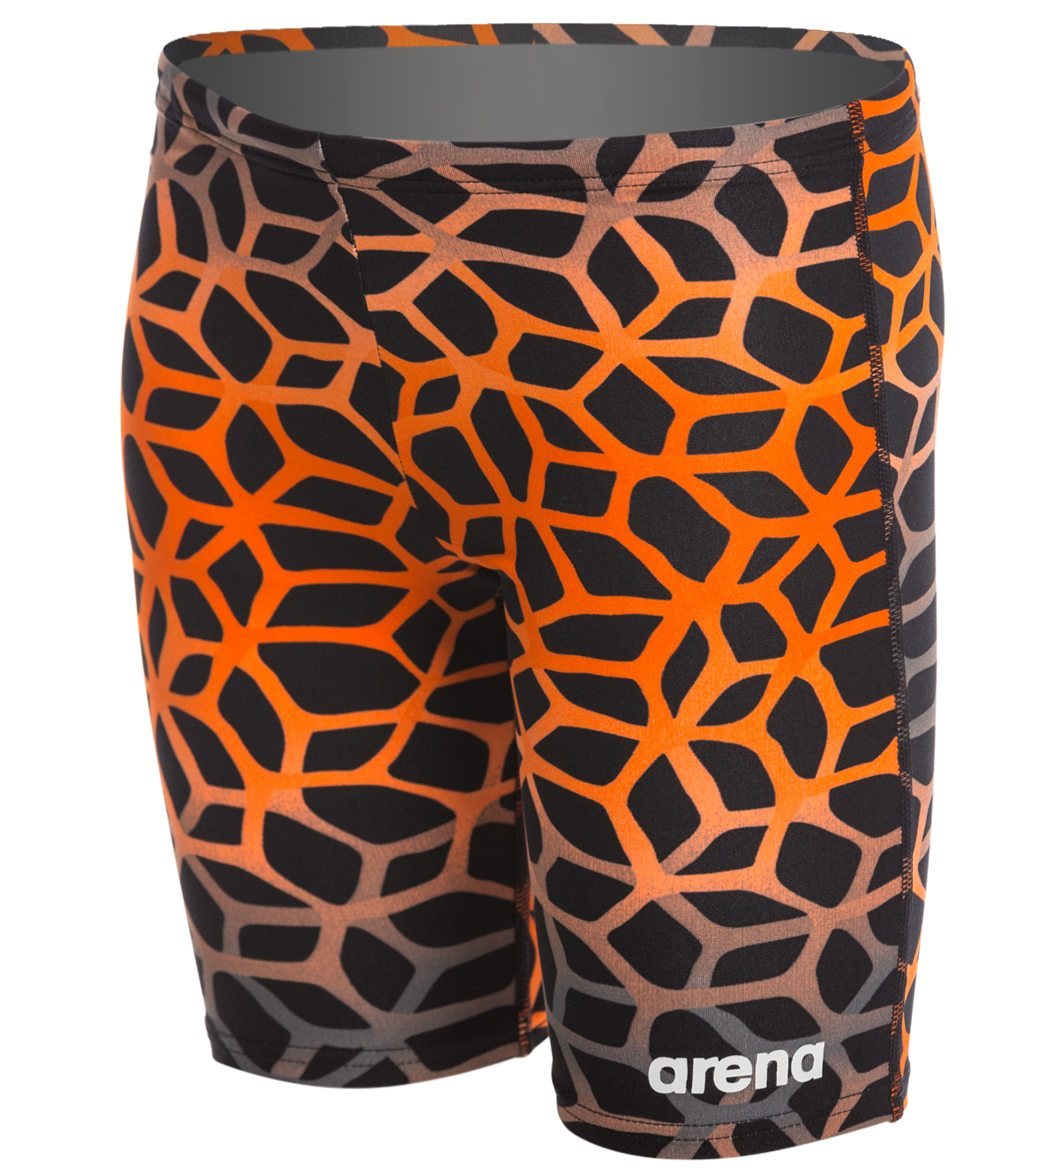 06277034e1 Arena Boy's Polycarbonite II Jammer Swimsuit at SwimOutlet.com - Free  Shipping